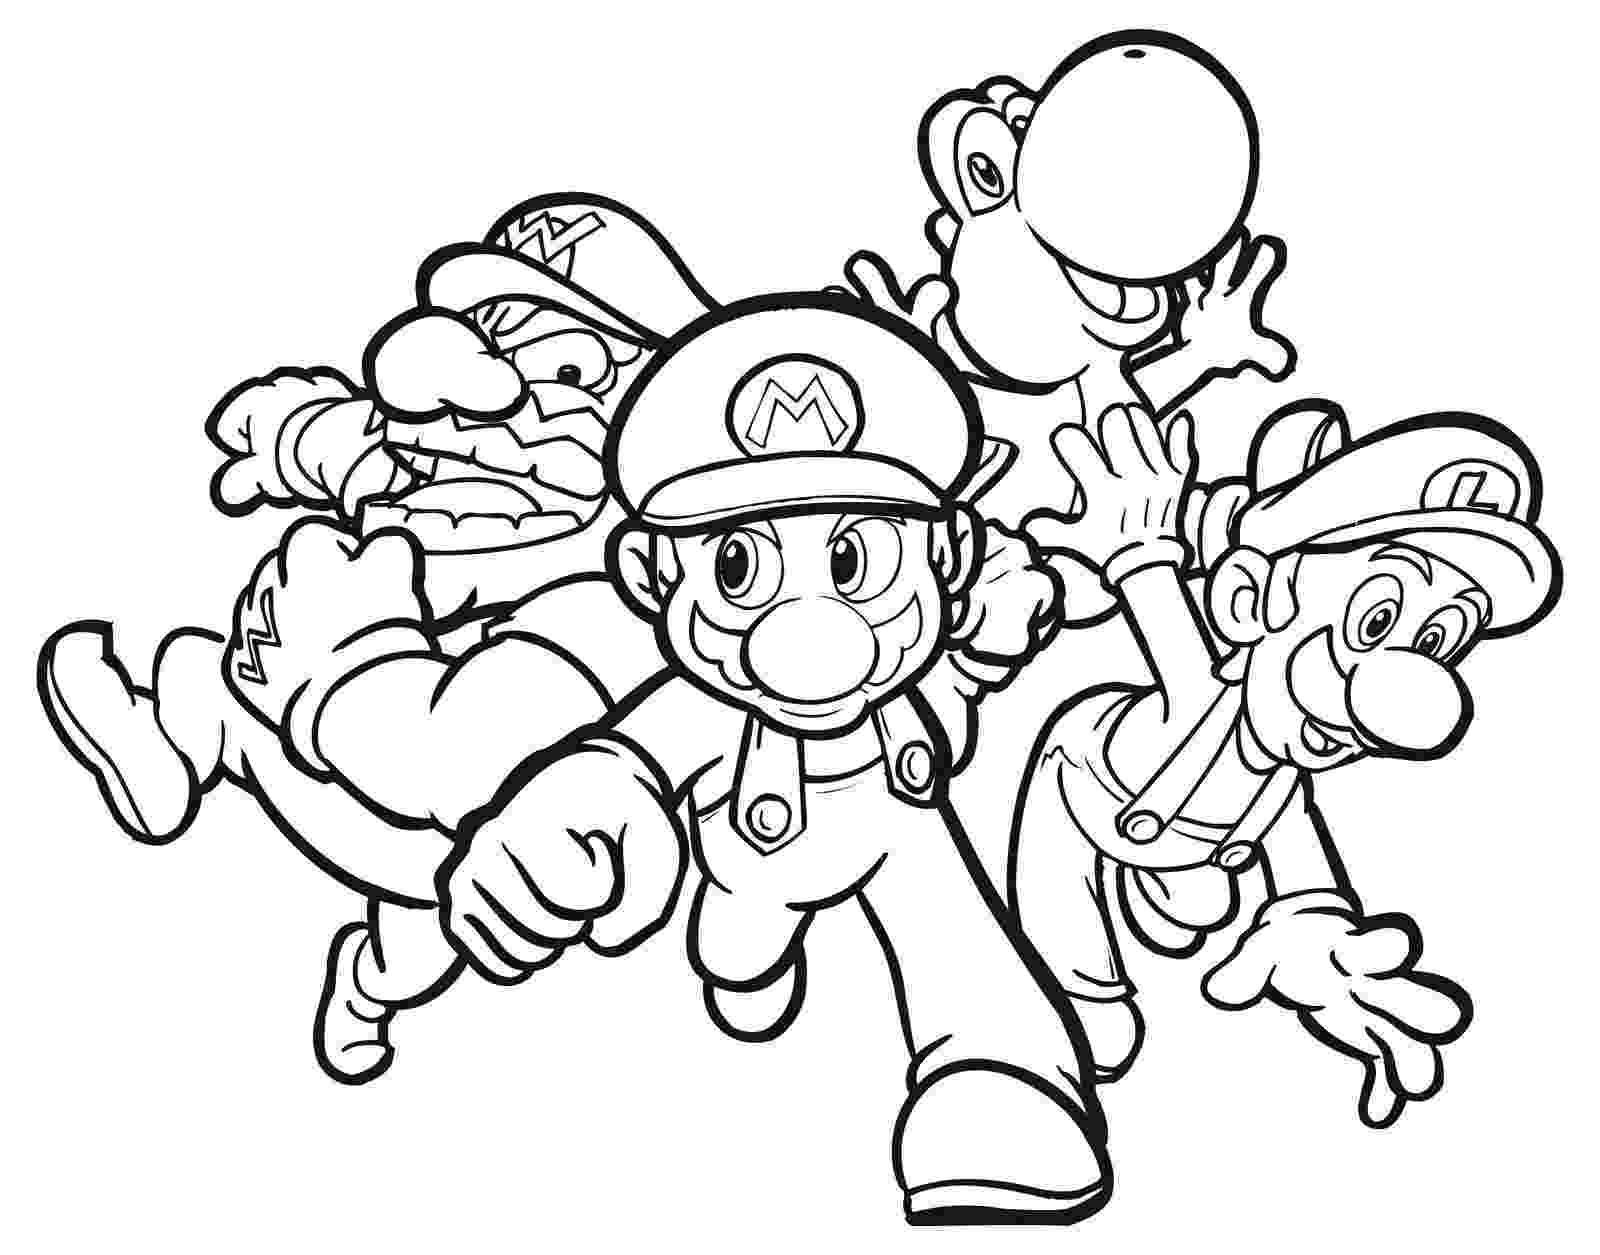 super mario bros printable coloring pages super mario coloring pages best coloring pages for kids coloring bros printable super pages mario